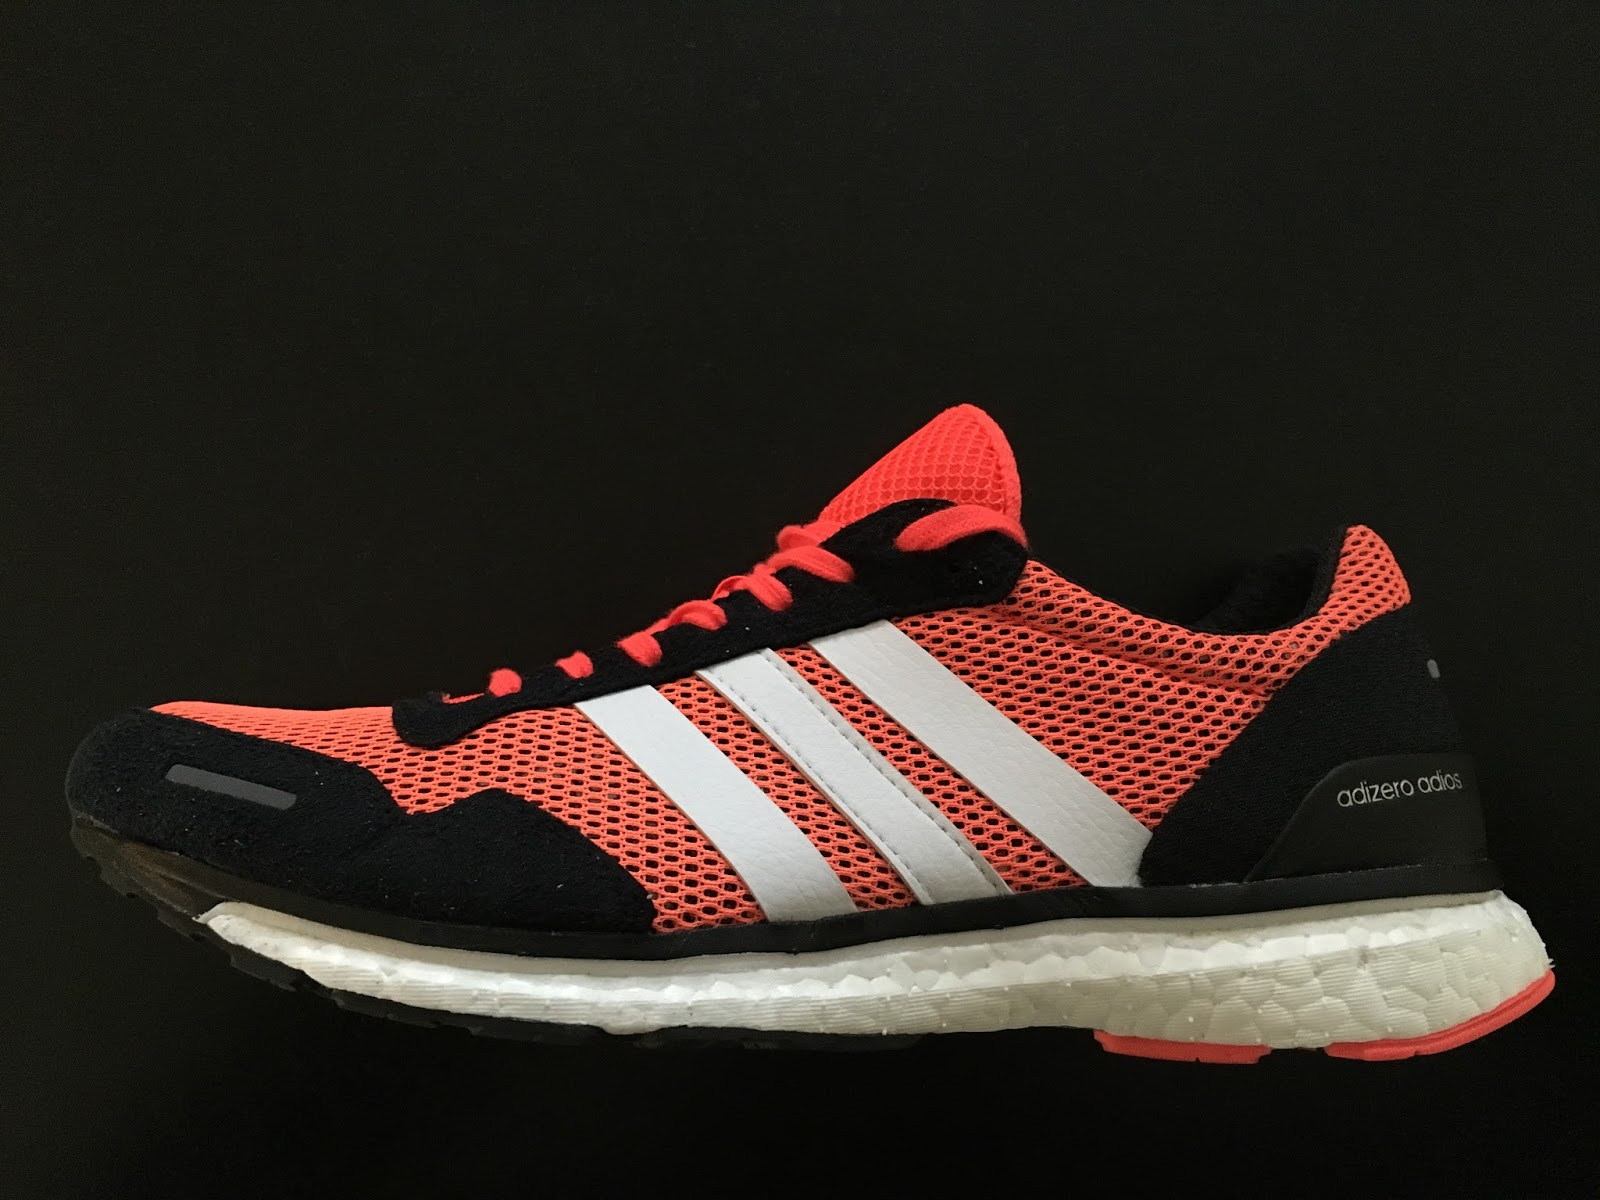 abcdad49a02 The adidas adizero adios Boost 3 is the latest iteration of the shoe worn  by Dennis Kimetto to the marathon world record of 2 02.57 in 2014.